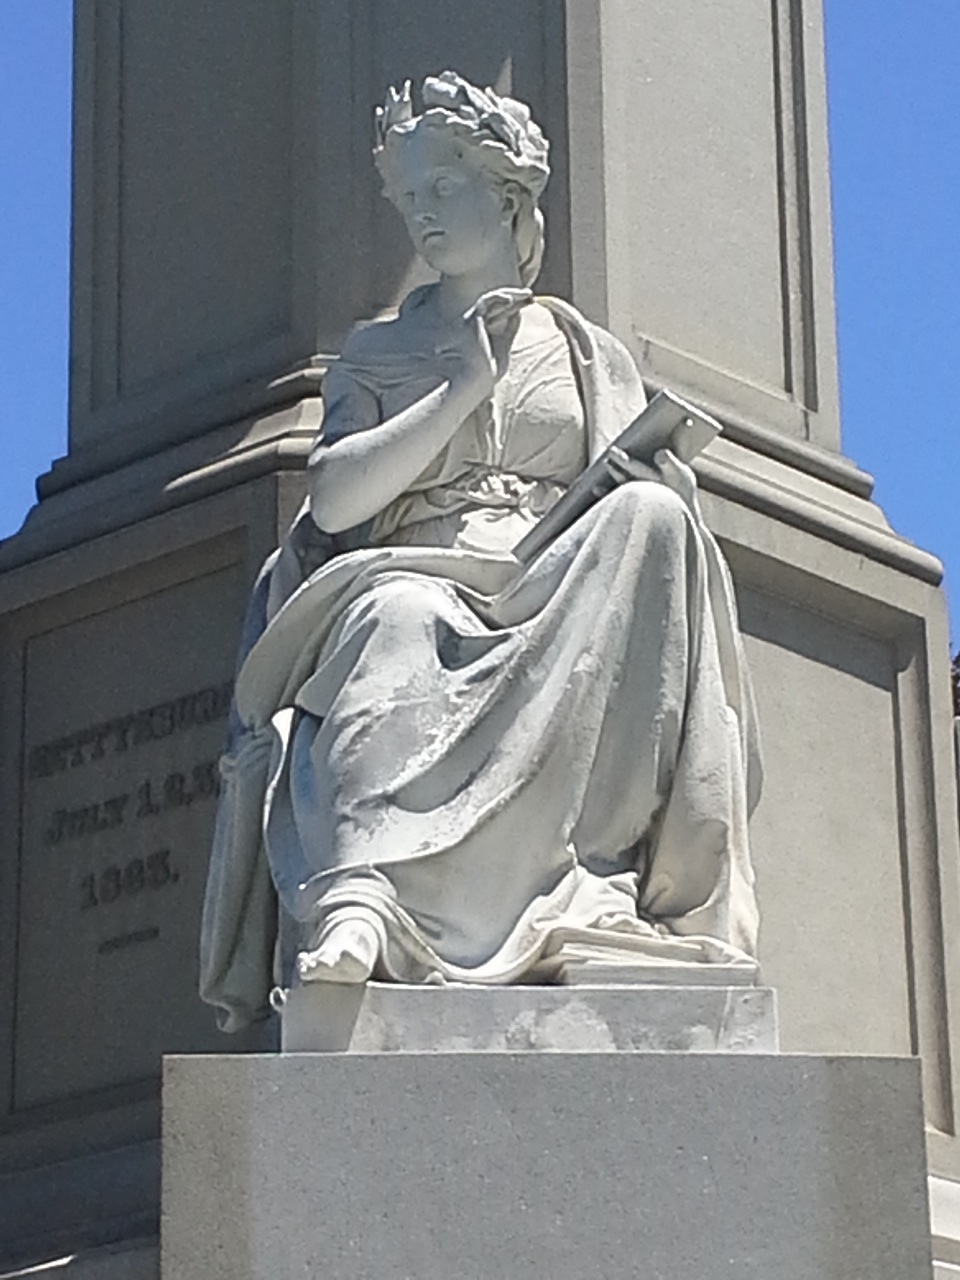 Statue of Clio, Greek muse of history, from the Soldiers' National Monument at Gettysburg National Cemetery. Photo by Donaldecoho. Wikimedia Commons.